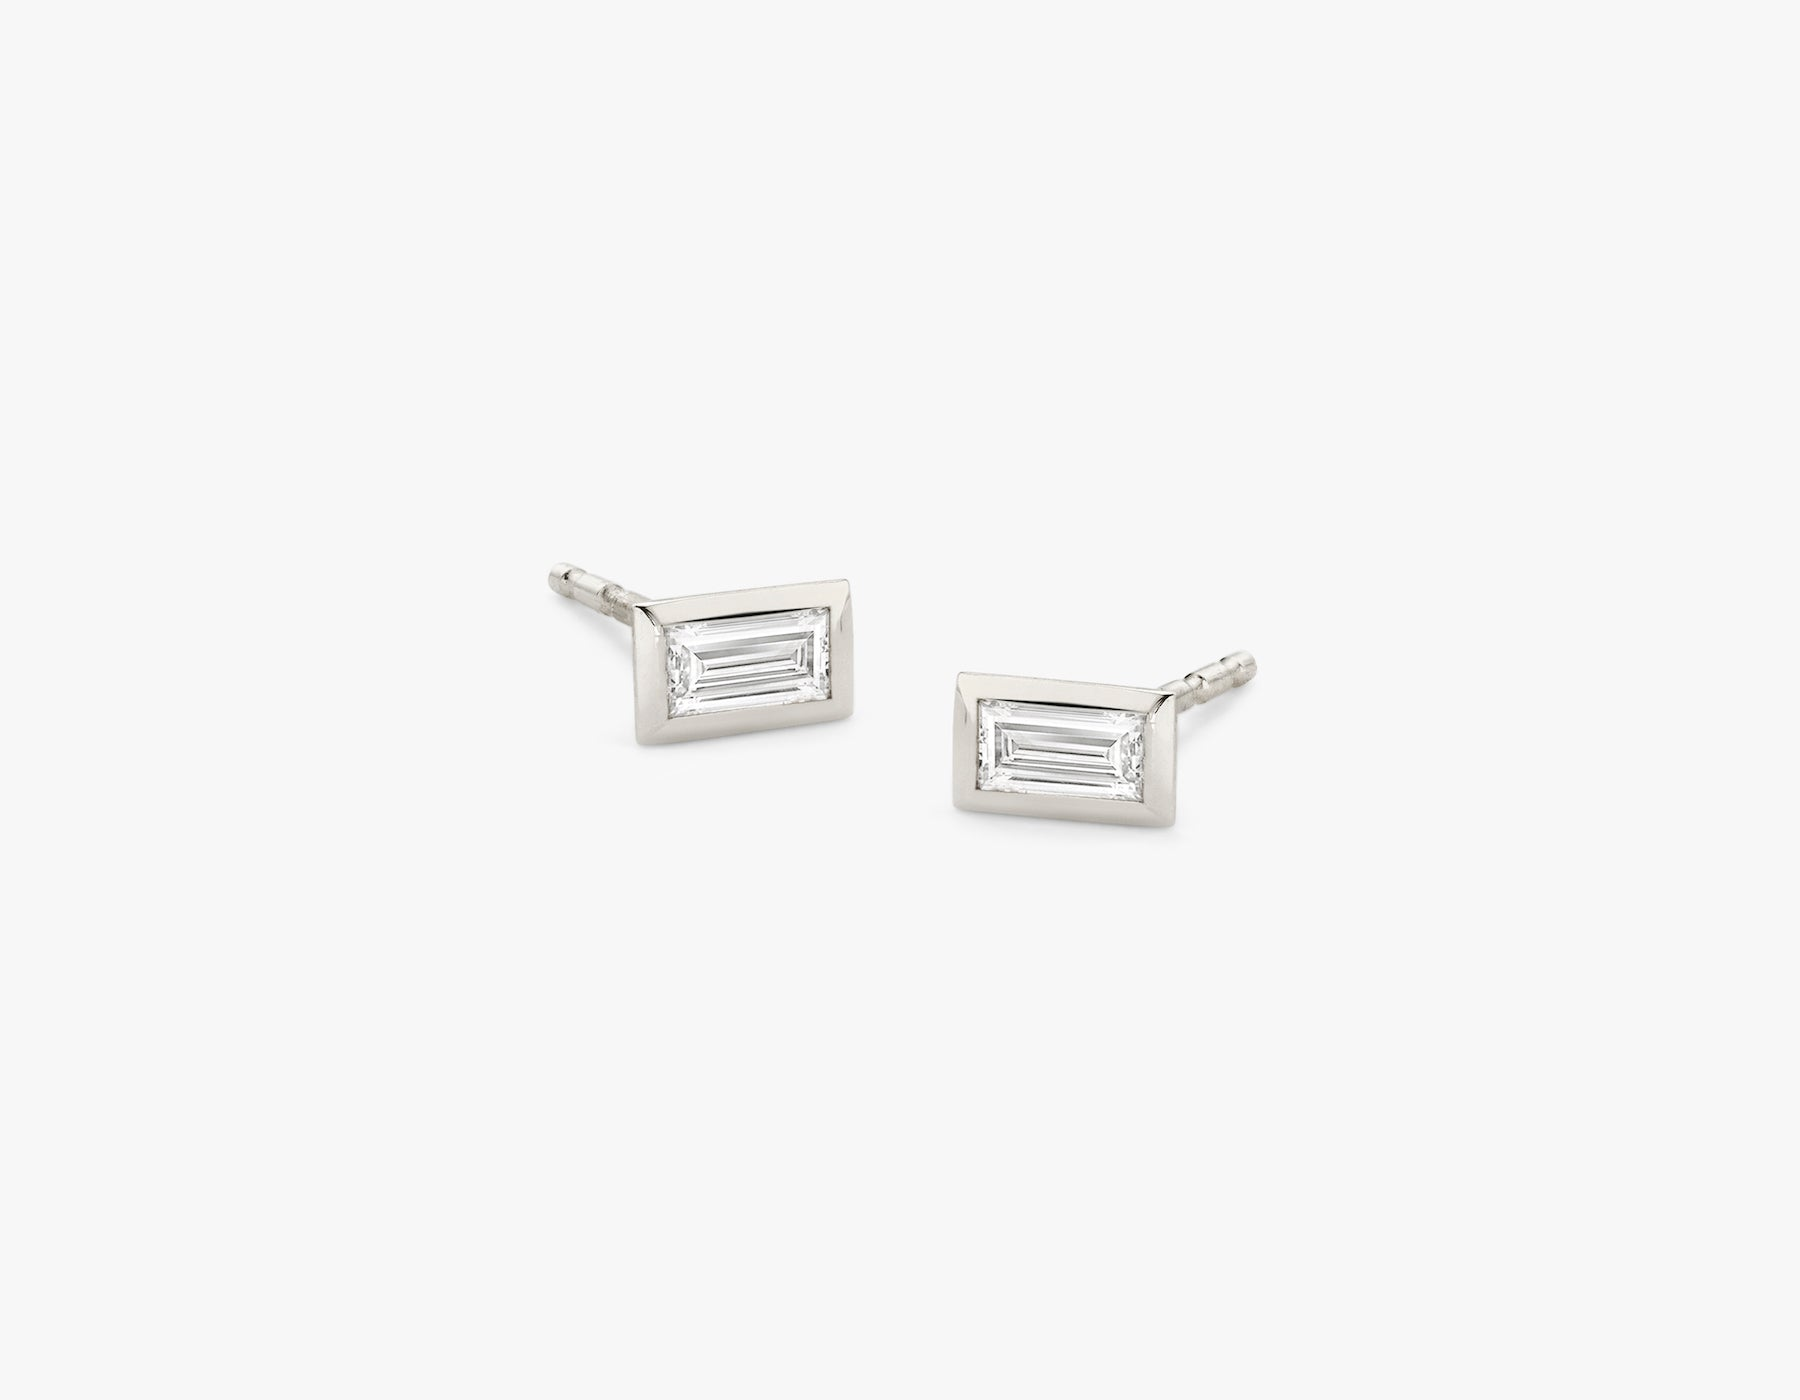 Vrai simple minimalist Baguette Diamond Bezel Earrings, 14K White Gold